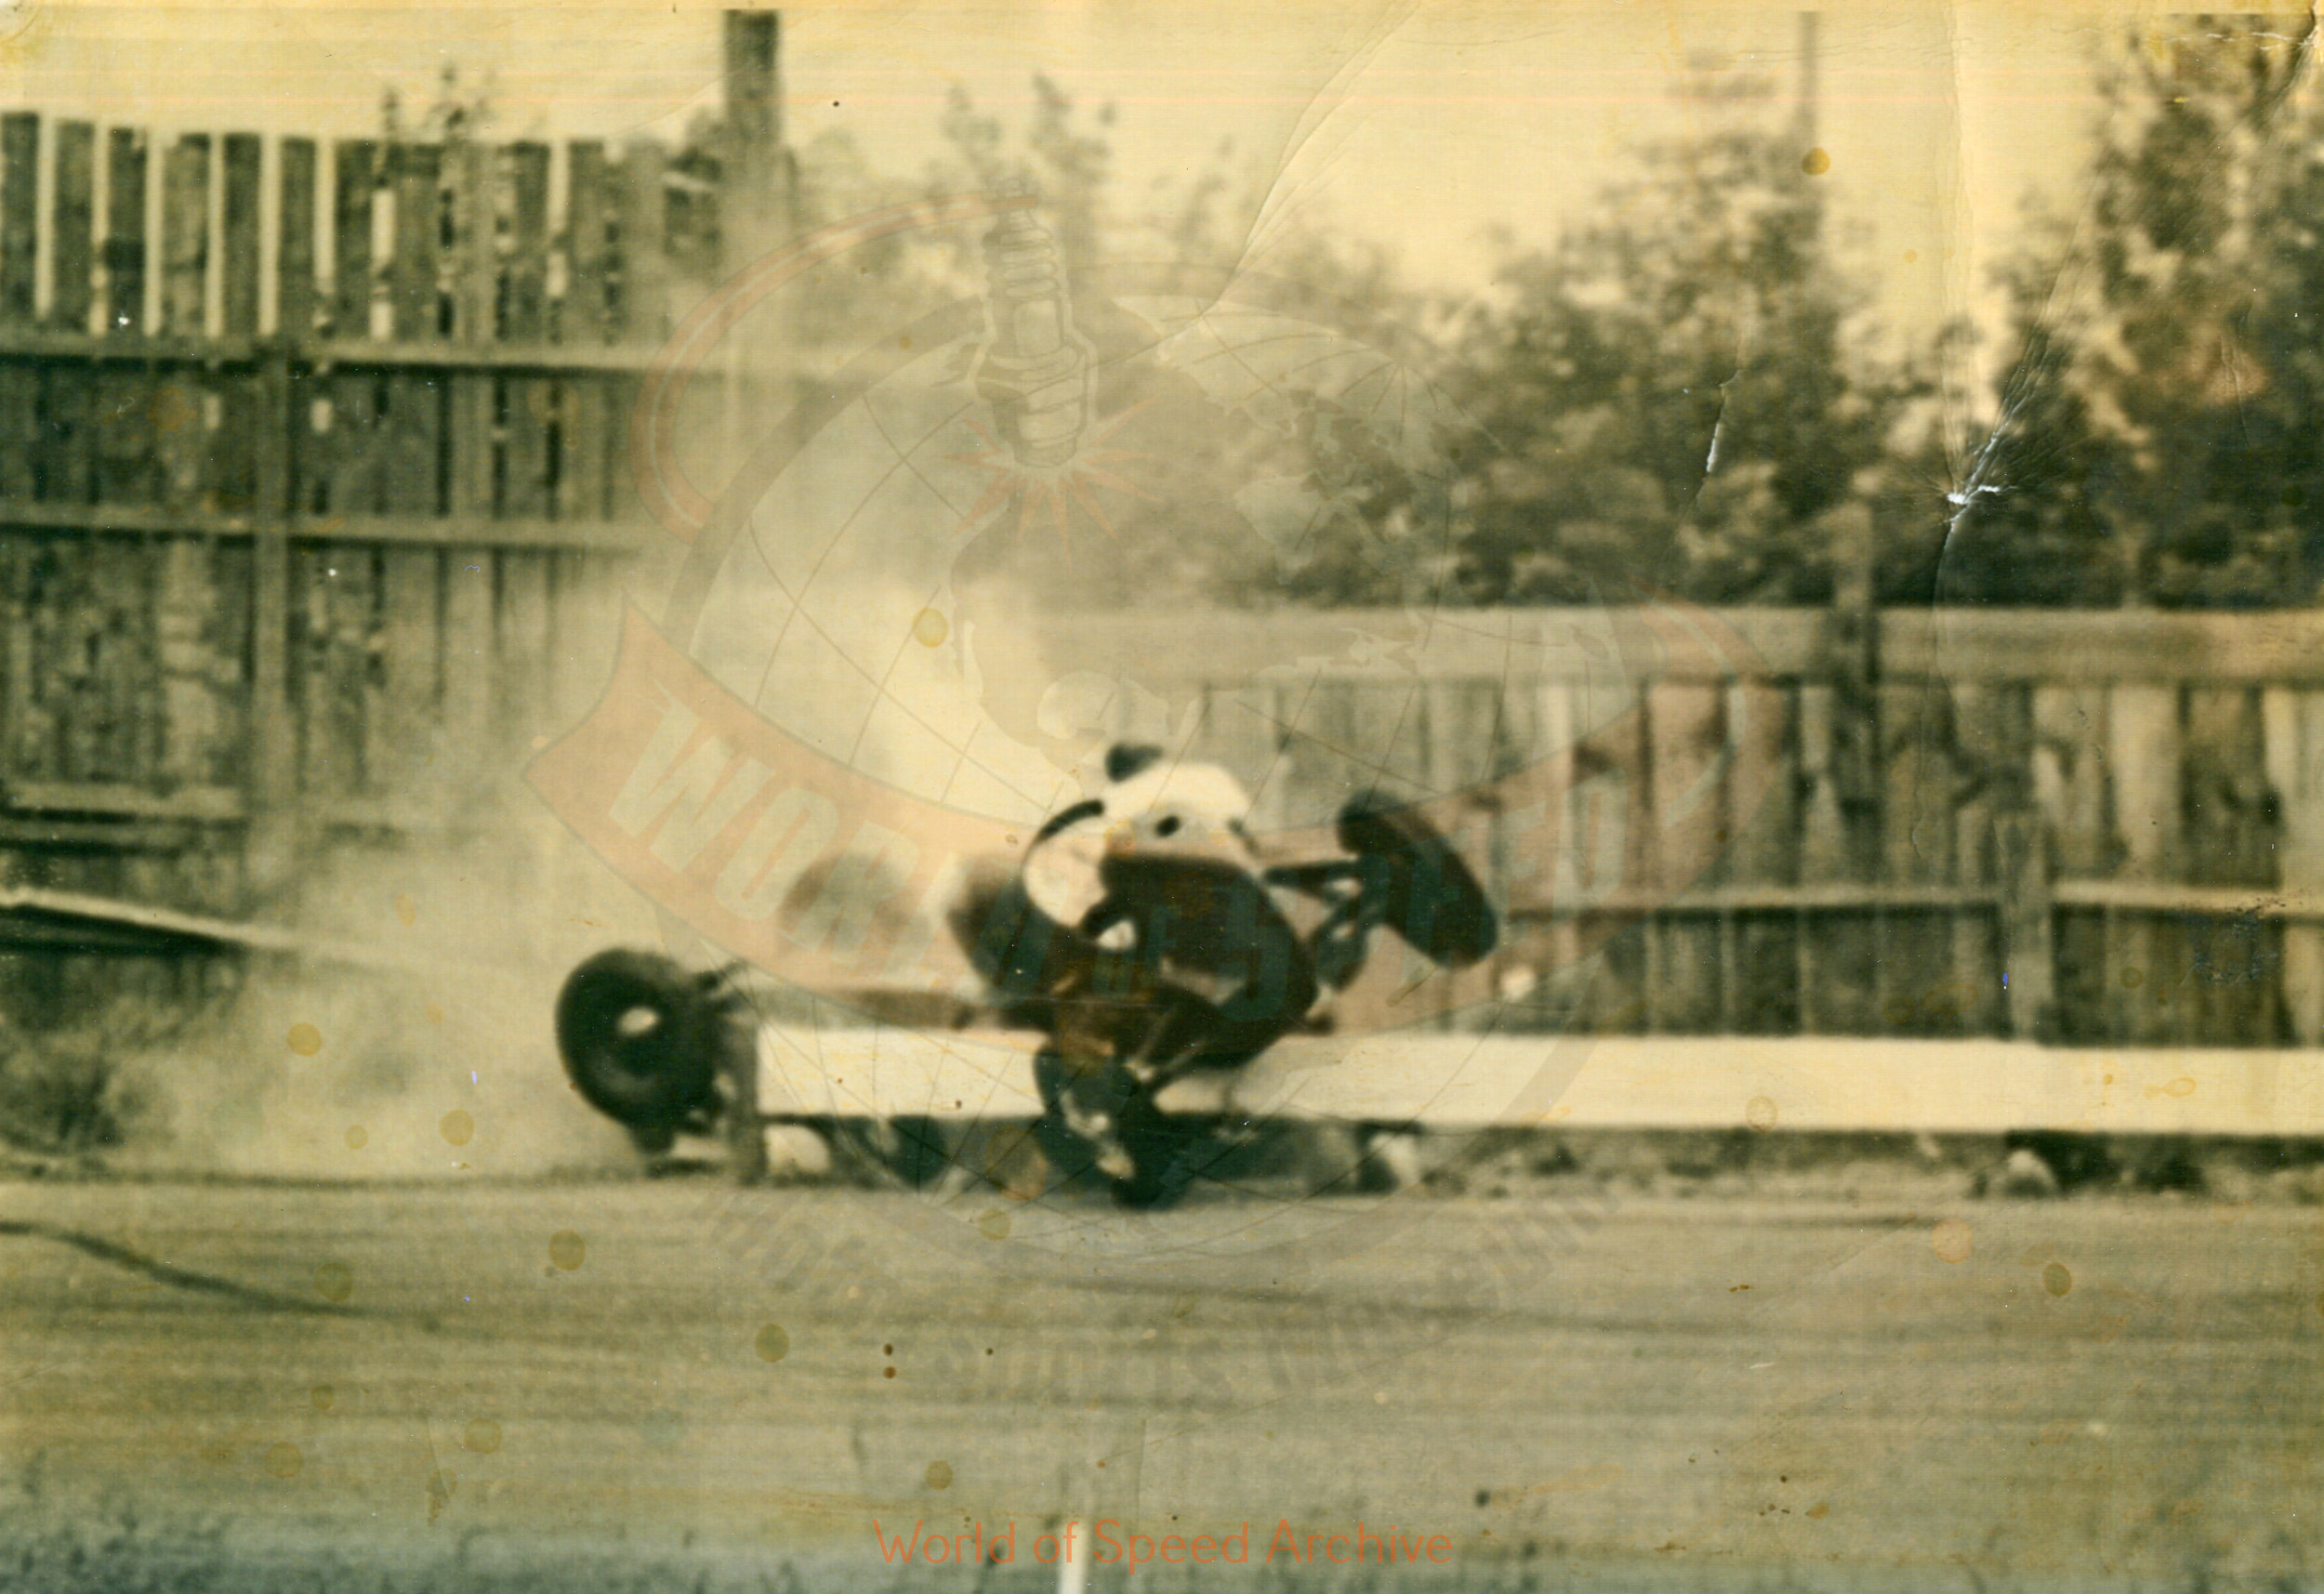 Hildick Photo Collection WOS#5072, BH018  Received submission:  1947 Portland Speedway; Gordy Youngstrom #46 (owned by Bob Scovell) on the rail, Marvin Cox #5 upside down; both survived uninjured